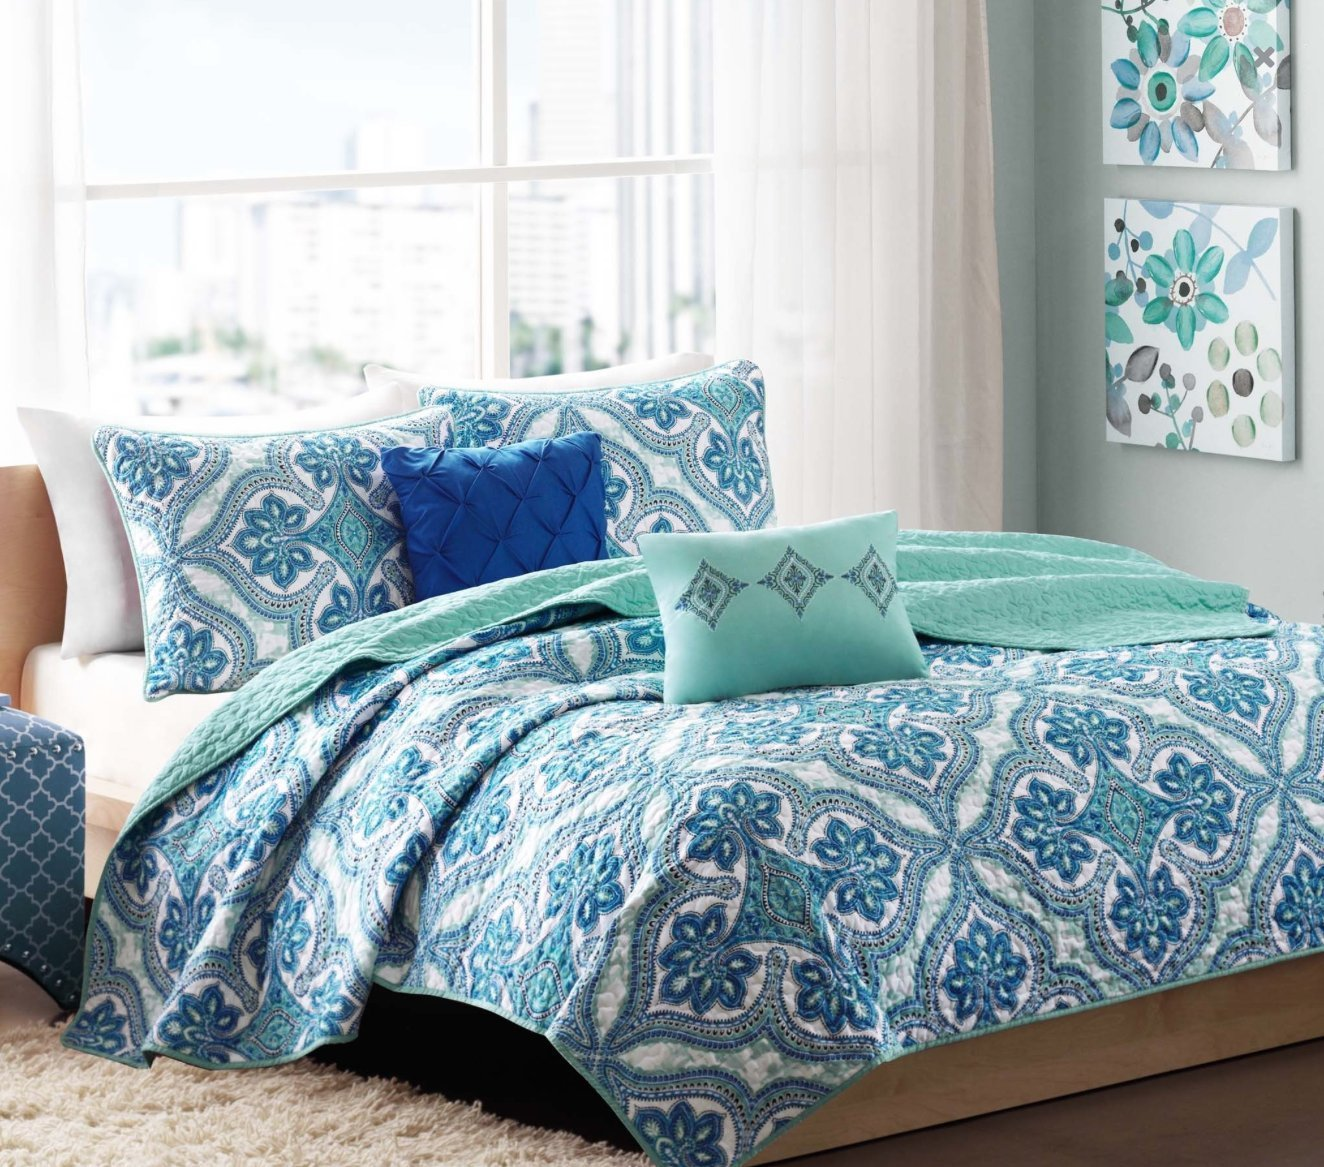 green king queen bedding cal country quilt floral ivory ebay pin set quilts patchwork twin sized